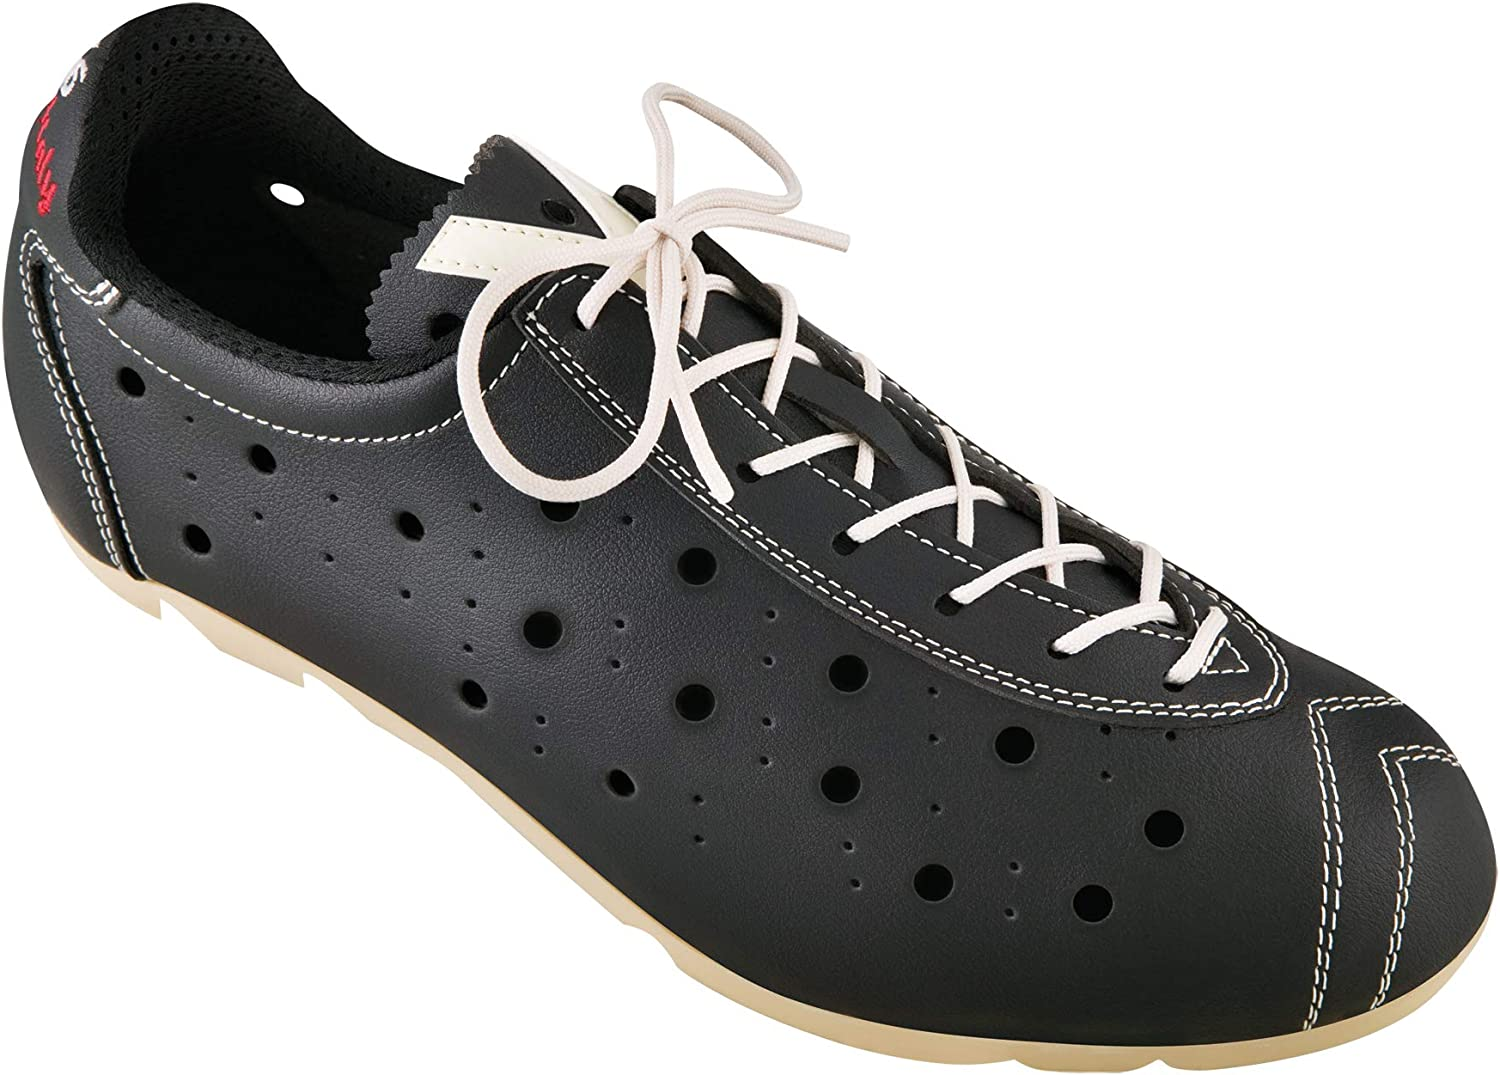 Vittoria 1976 Bianco LINE Cycling Shoes